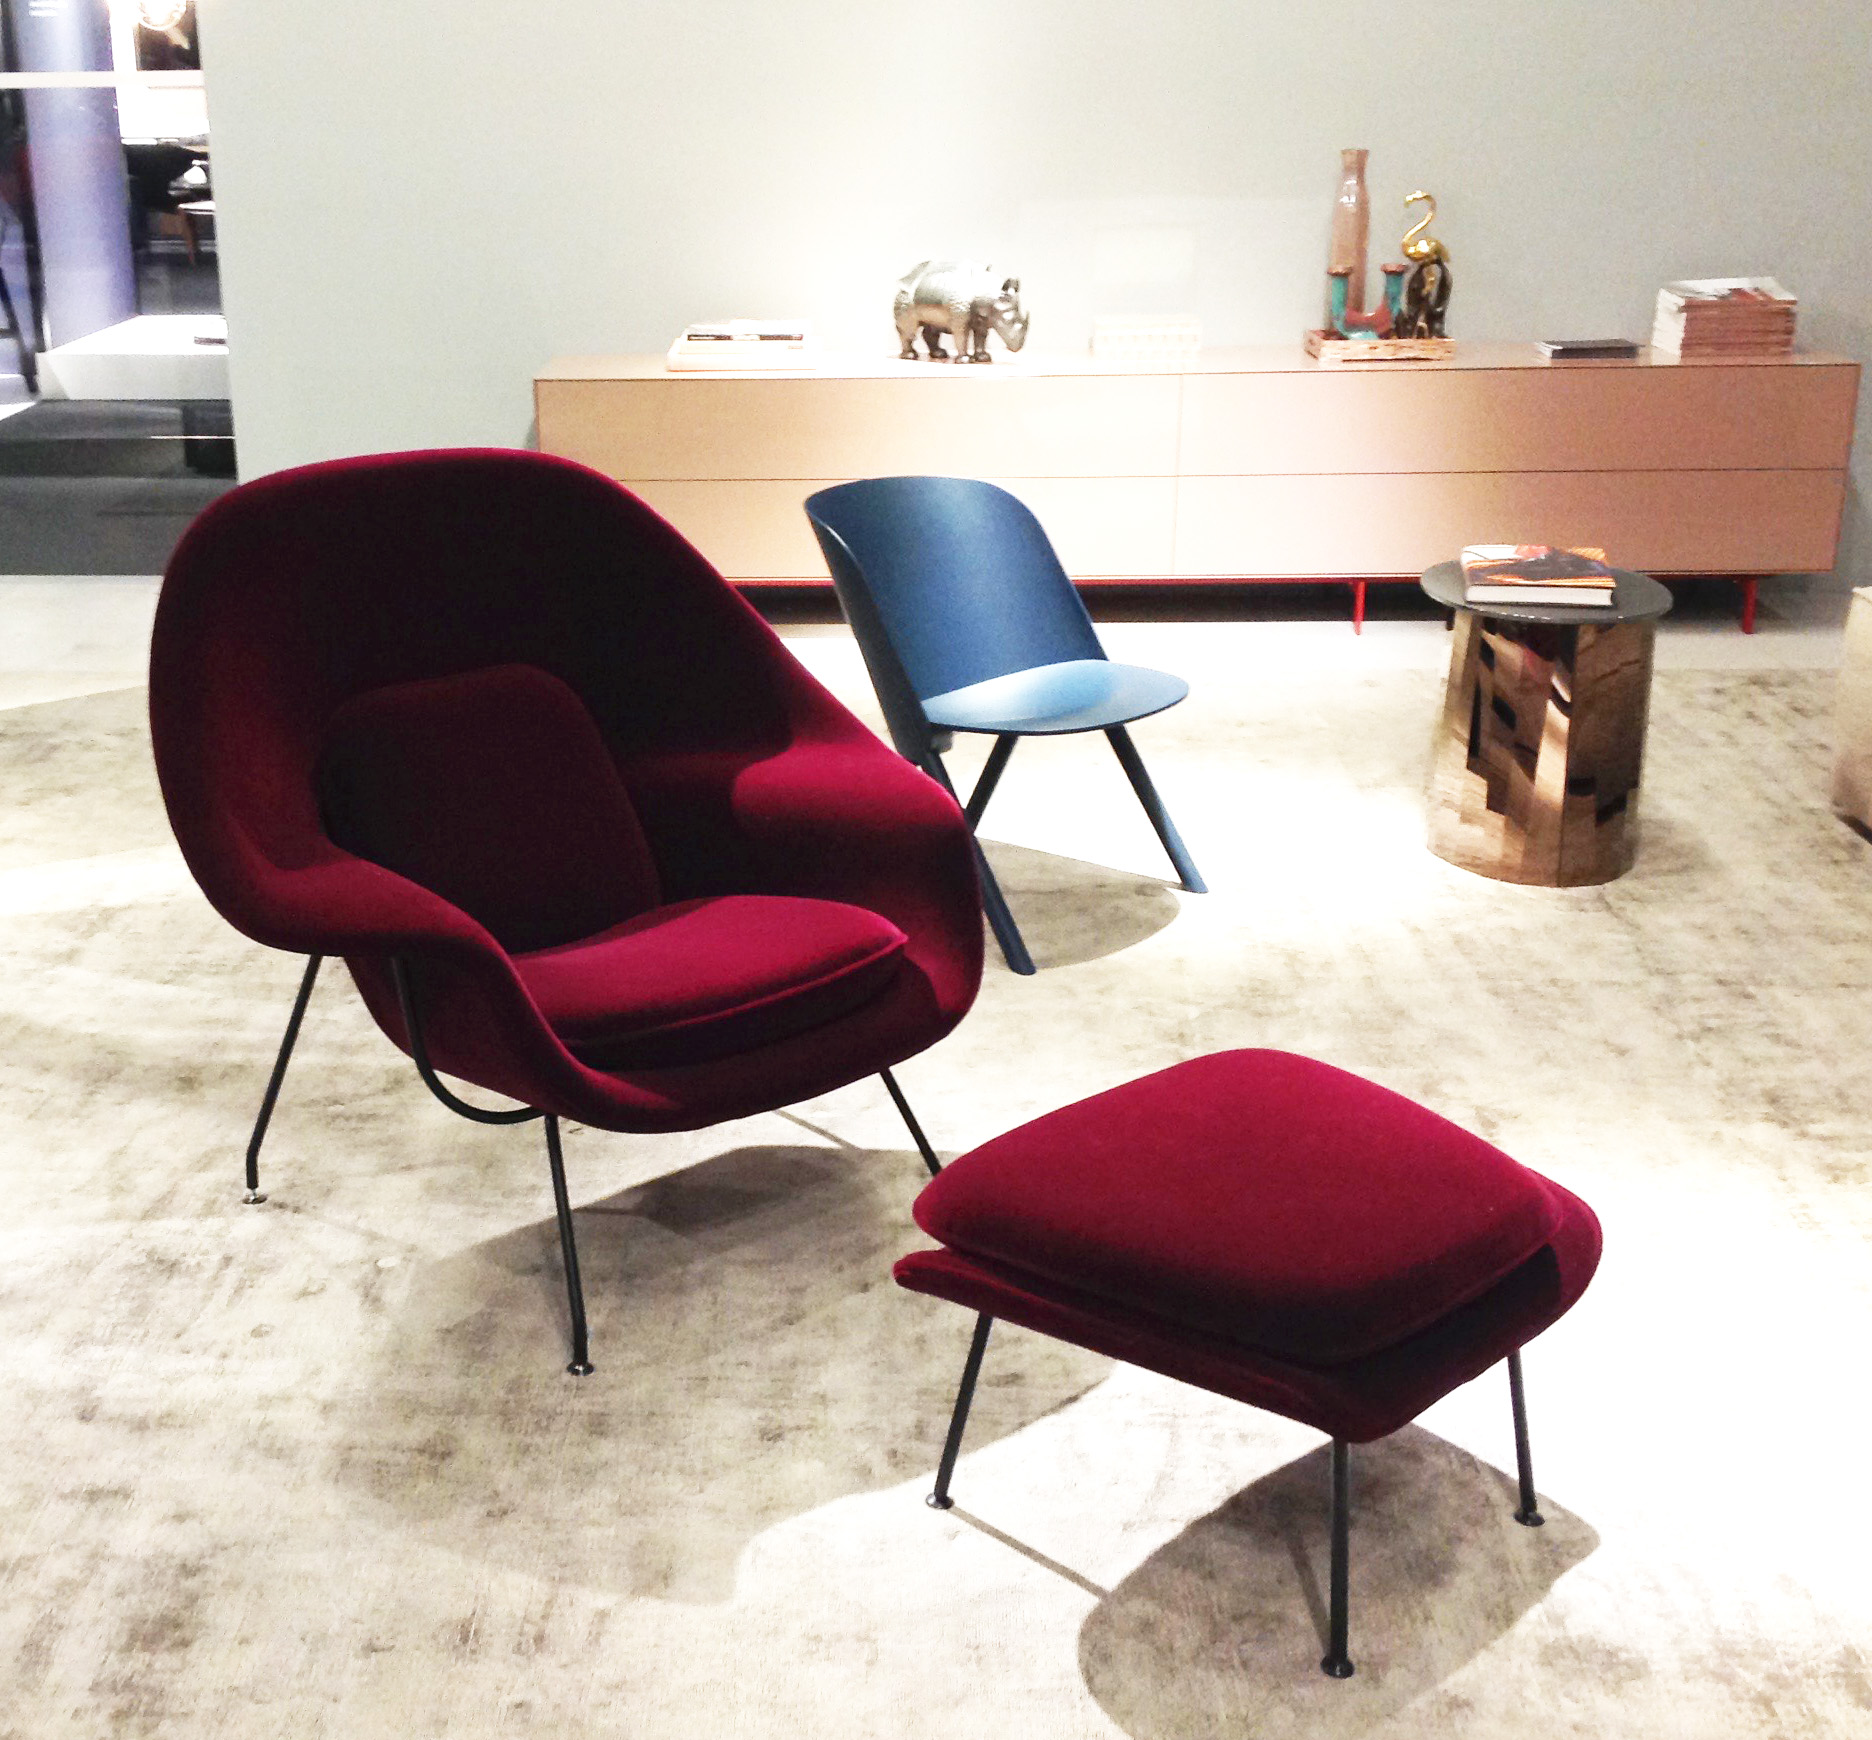 Womb Chair fra Knoll, design: Eero Saarinen